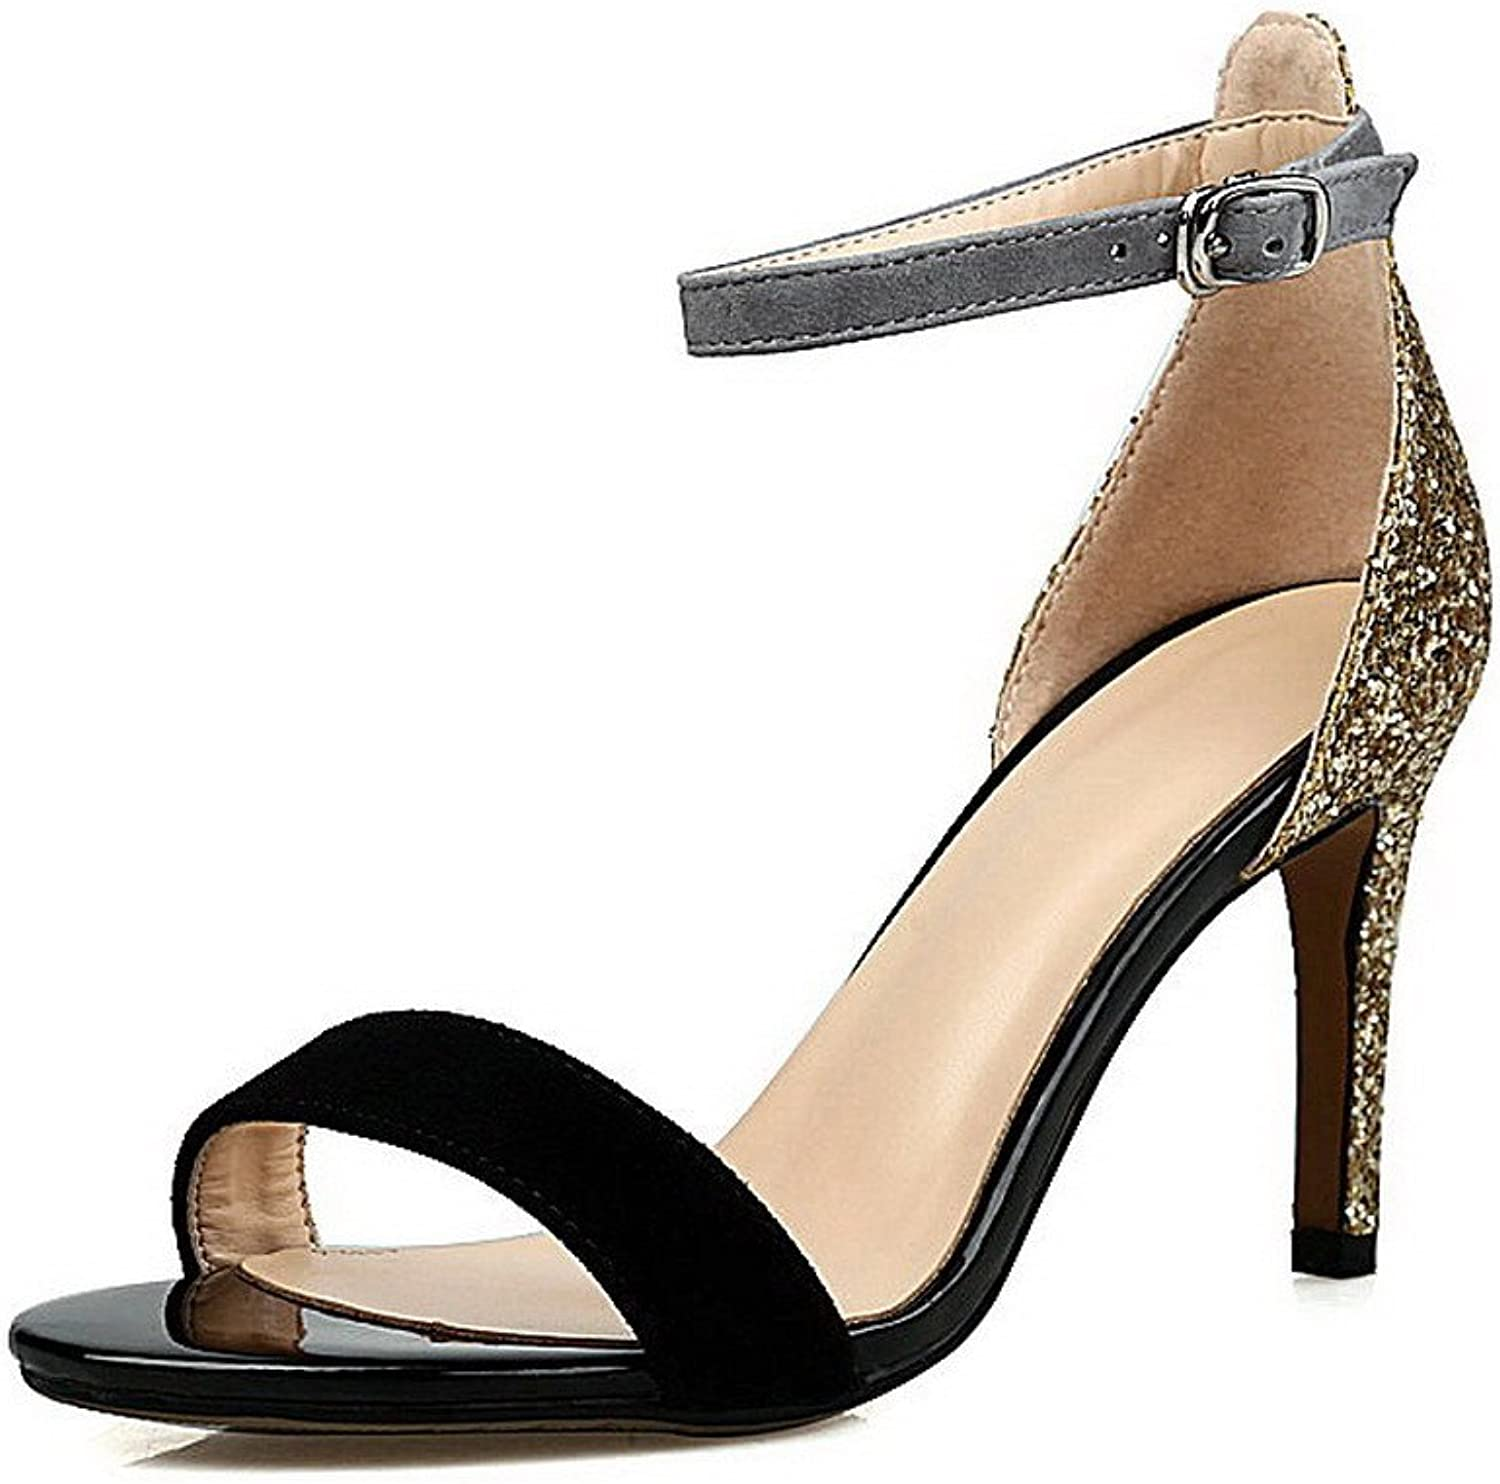 AmoonyFashion Women's Blend Materials Assorted color Buckle Open-Toe High-Heels Sandals